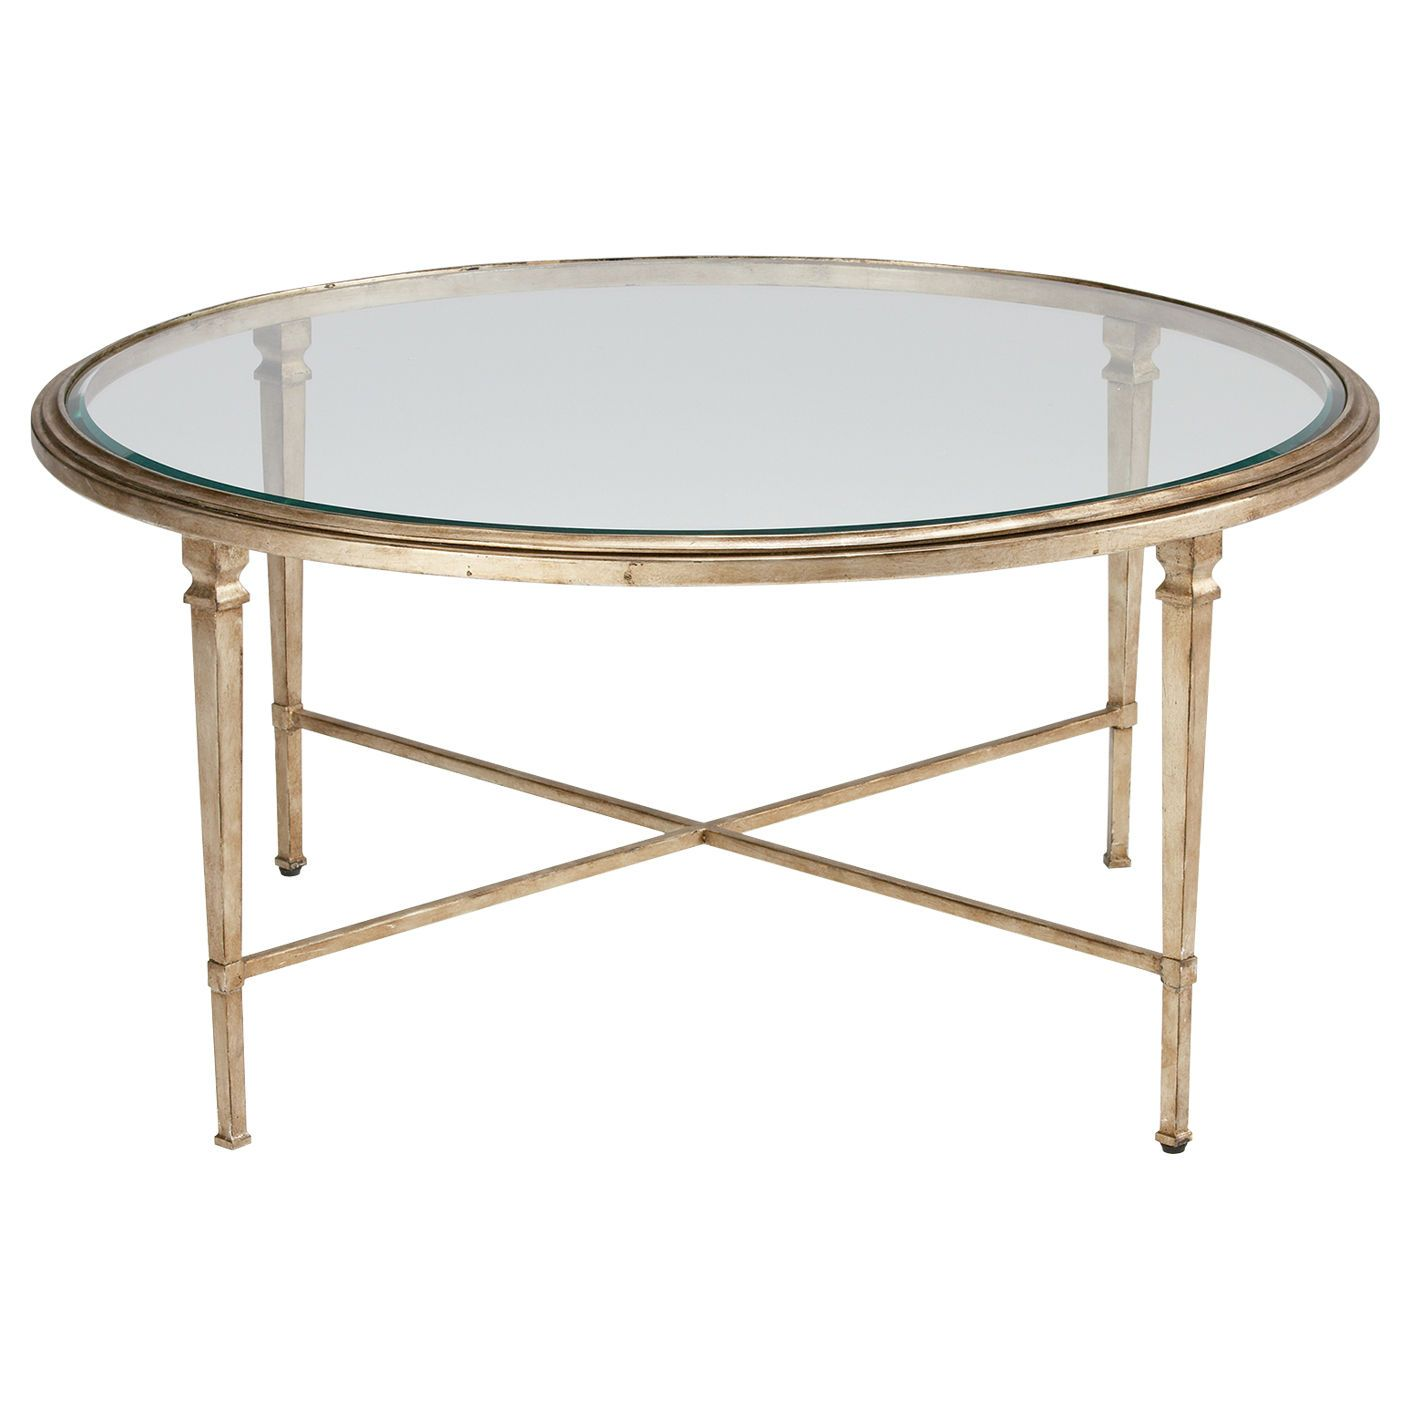 Heron Round Coffee Table Ethan Allen US House